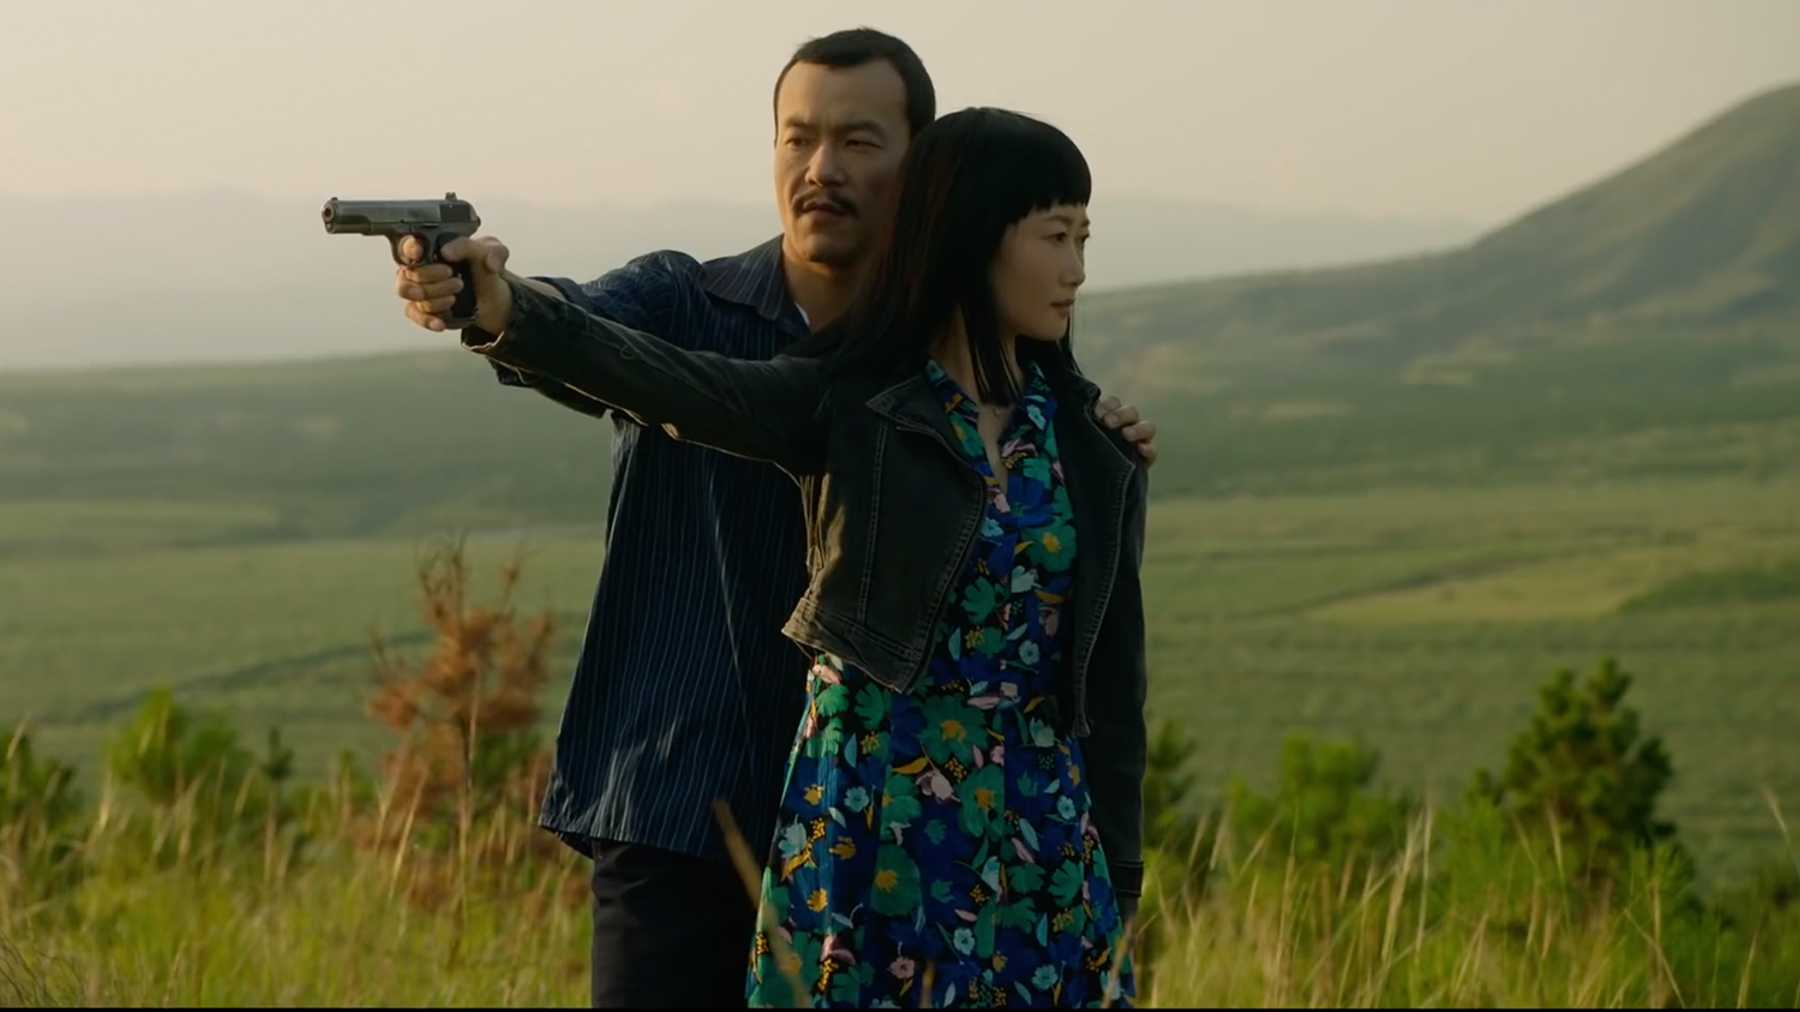 Lecture: Jia Zhangke and Ash is Purest White